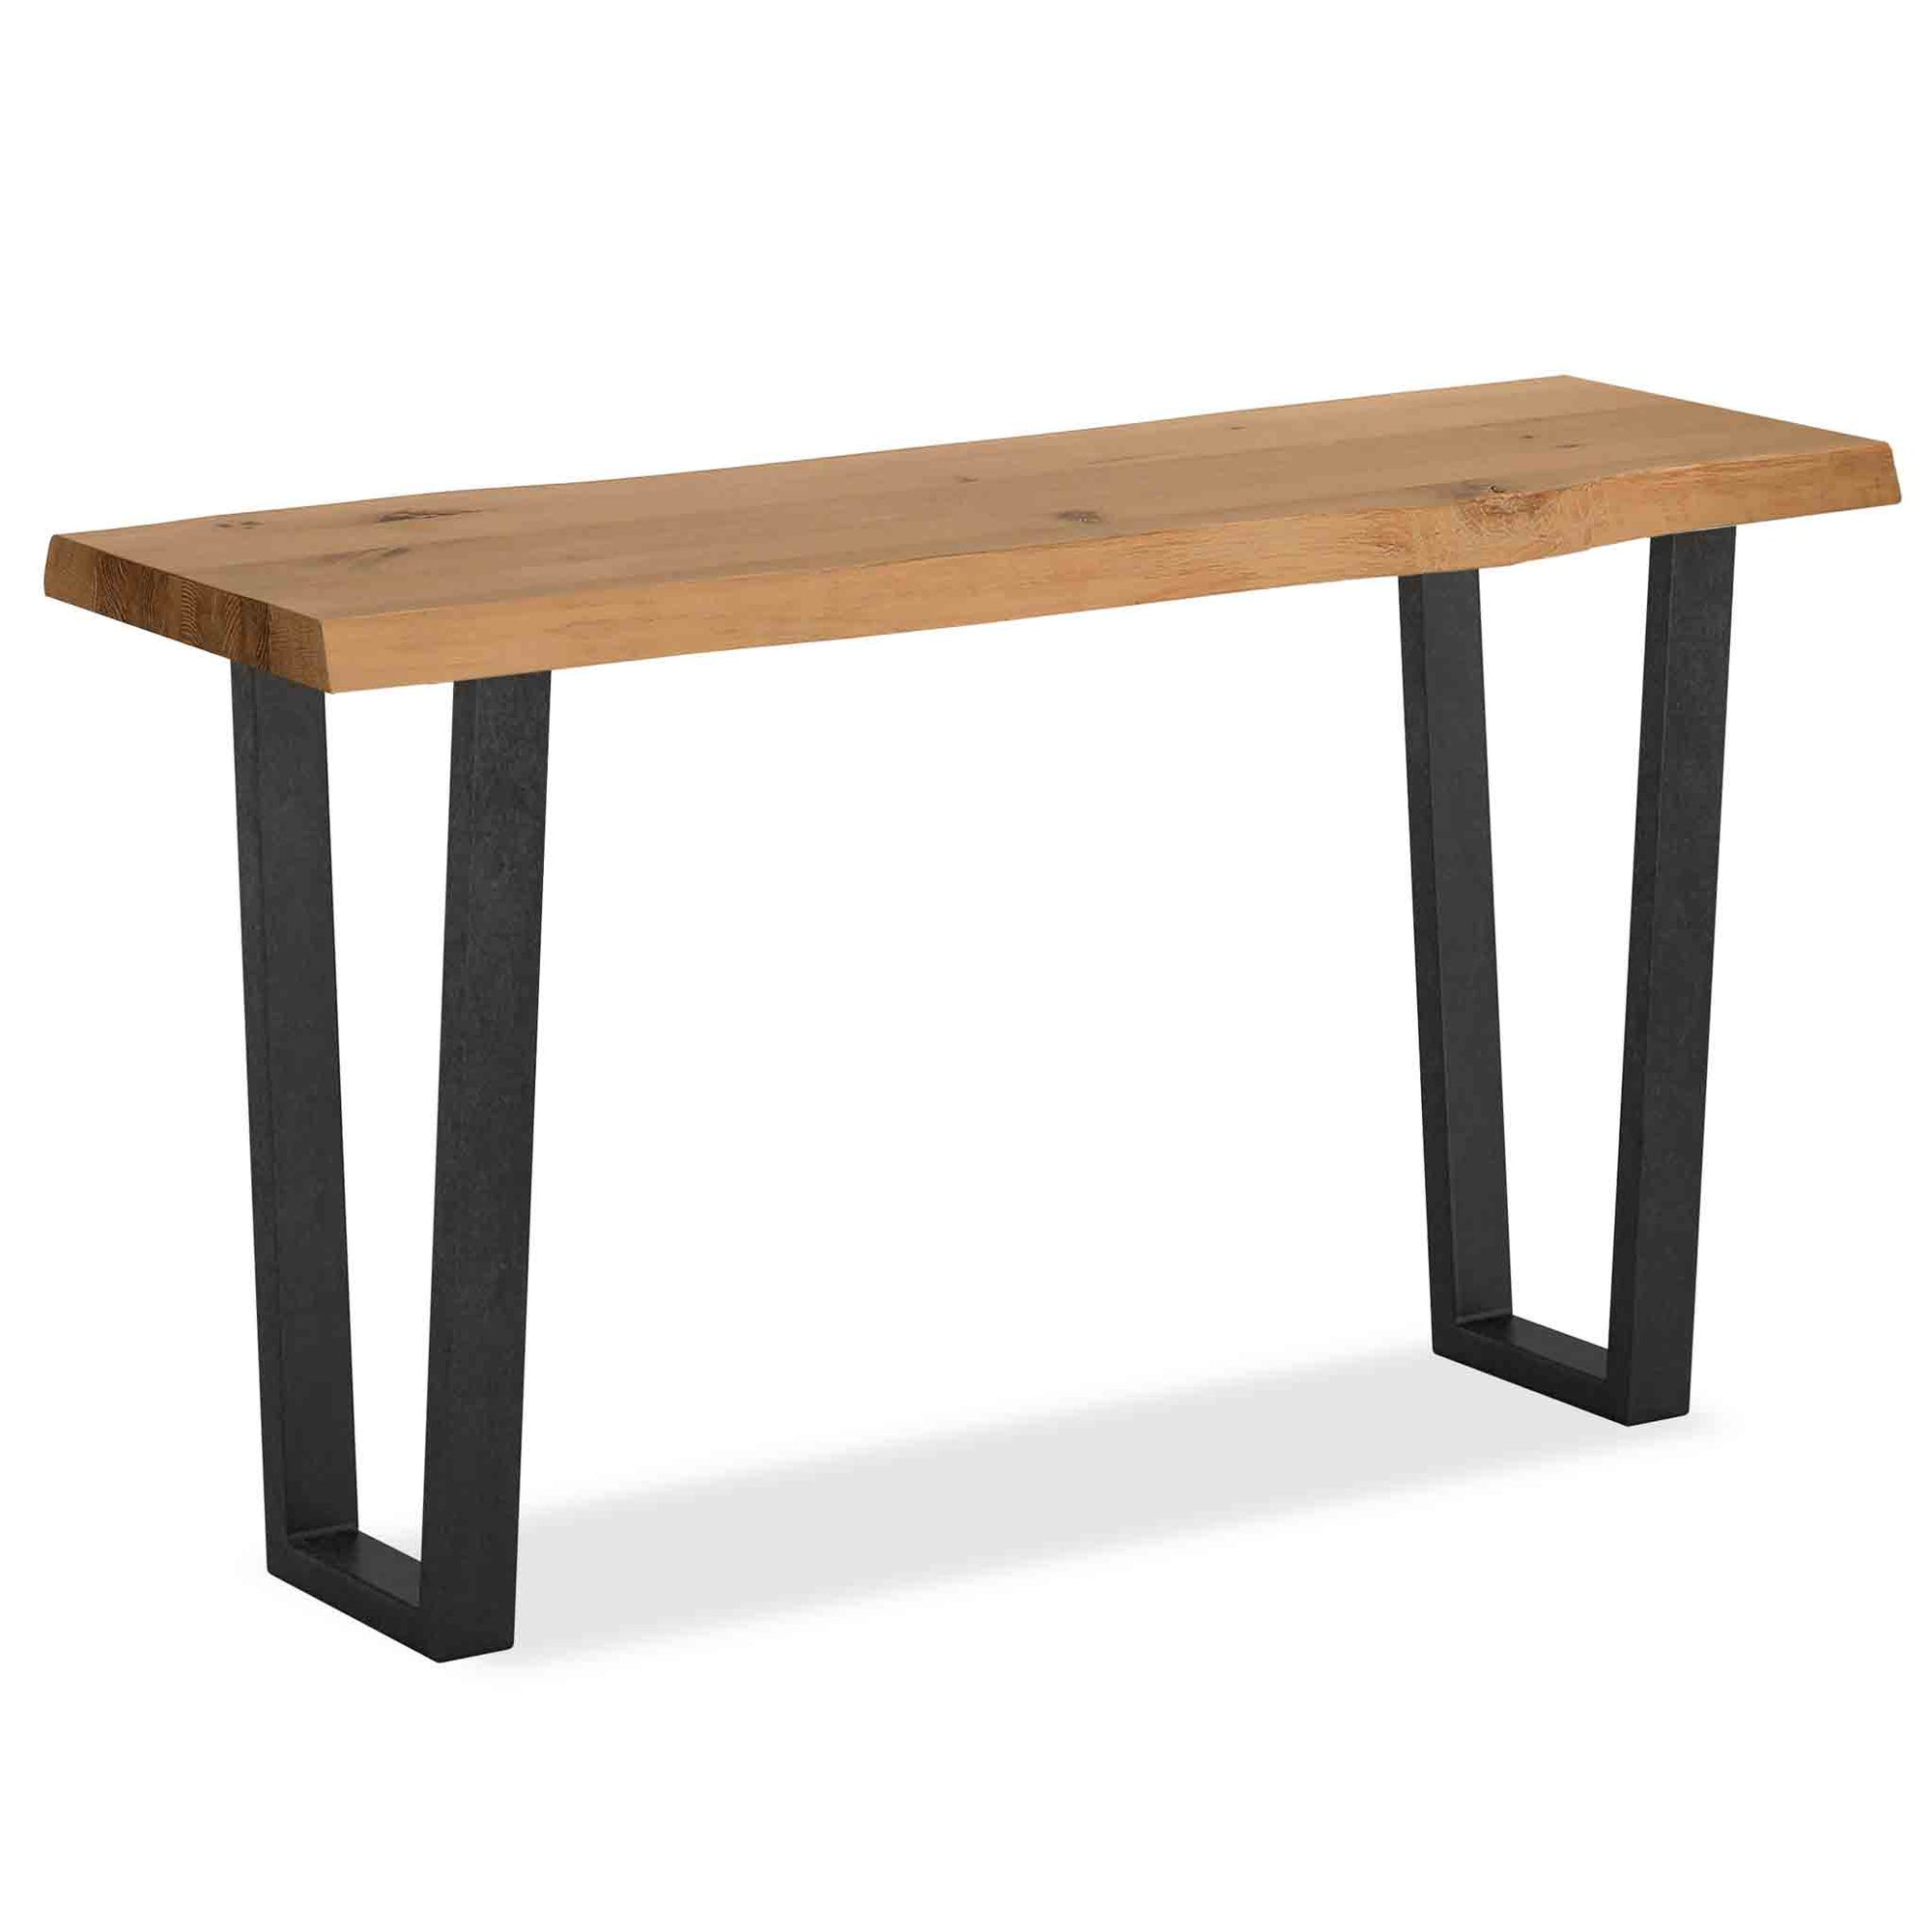 Oak Mill Console Table - Metal Base - Waxed Oak by Roseland Furniture